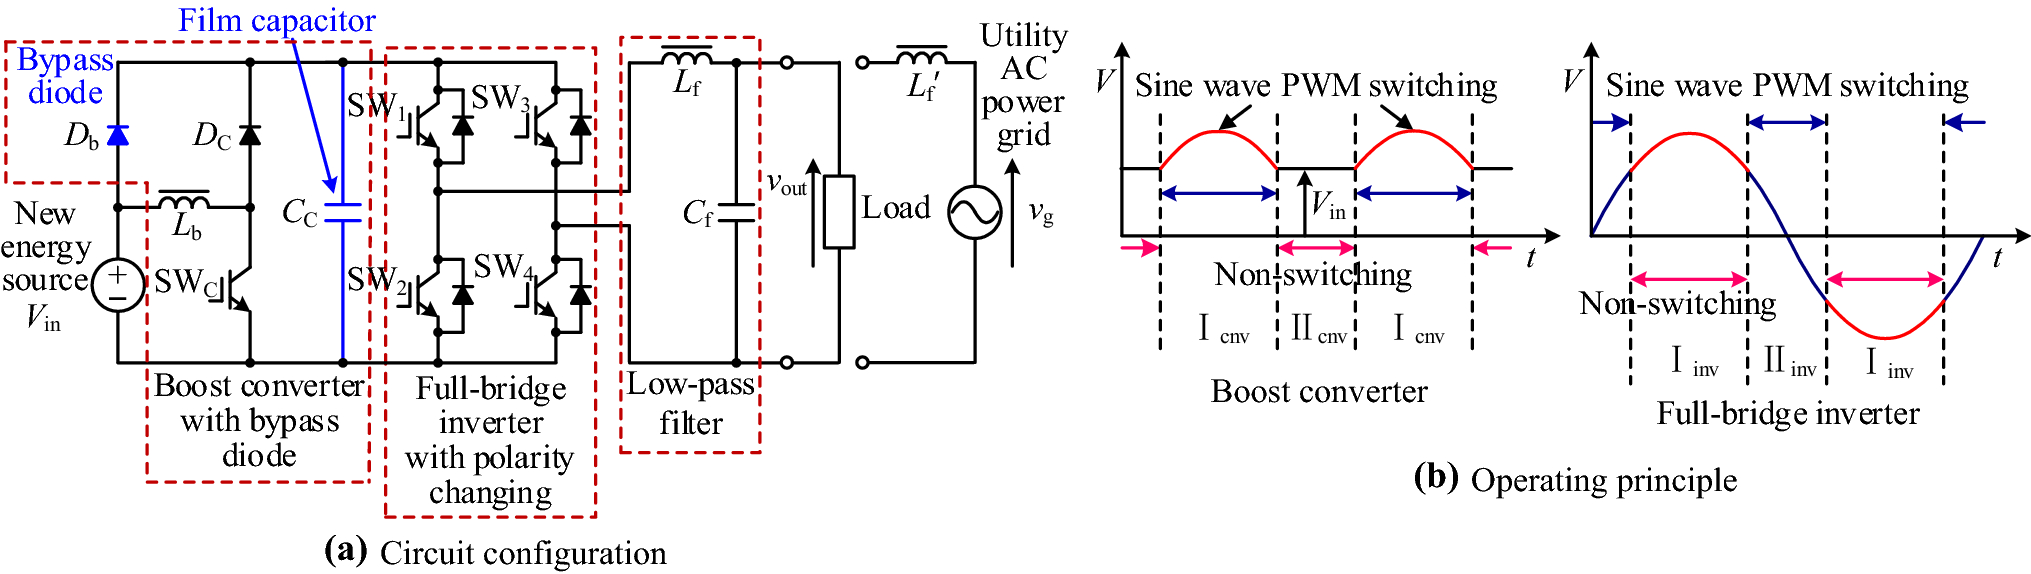 Partial Sine Wave Tracking Dual Mode Control Topology For A Single Connected Inverter The Full Bridge Circuit I Planned To Open Image In New Window